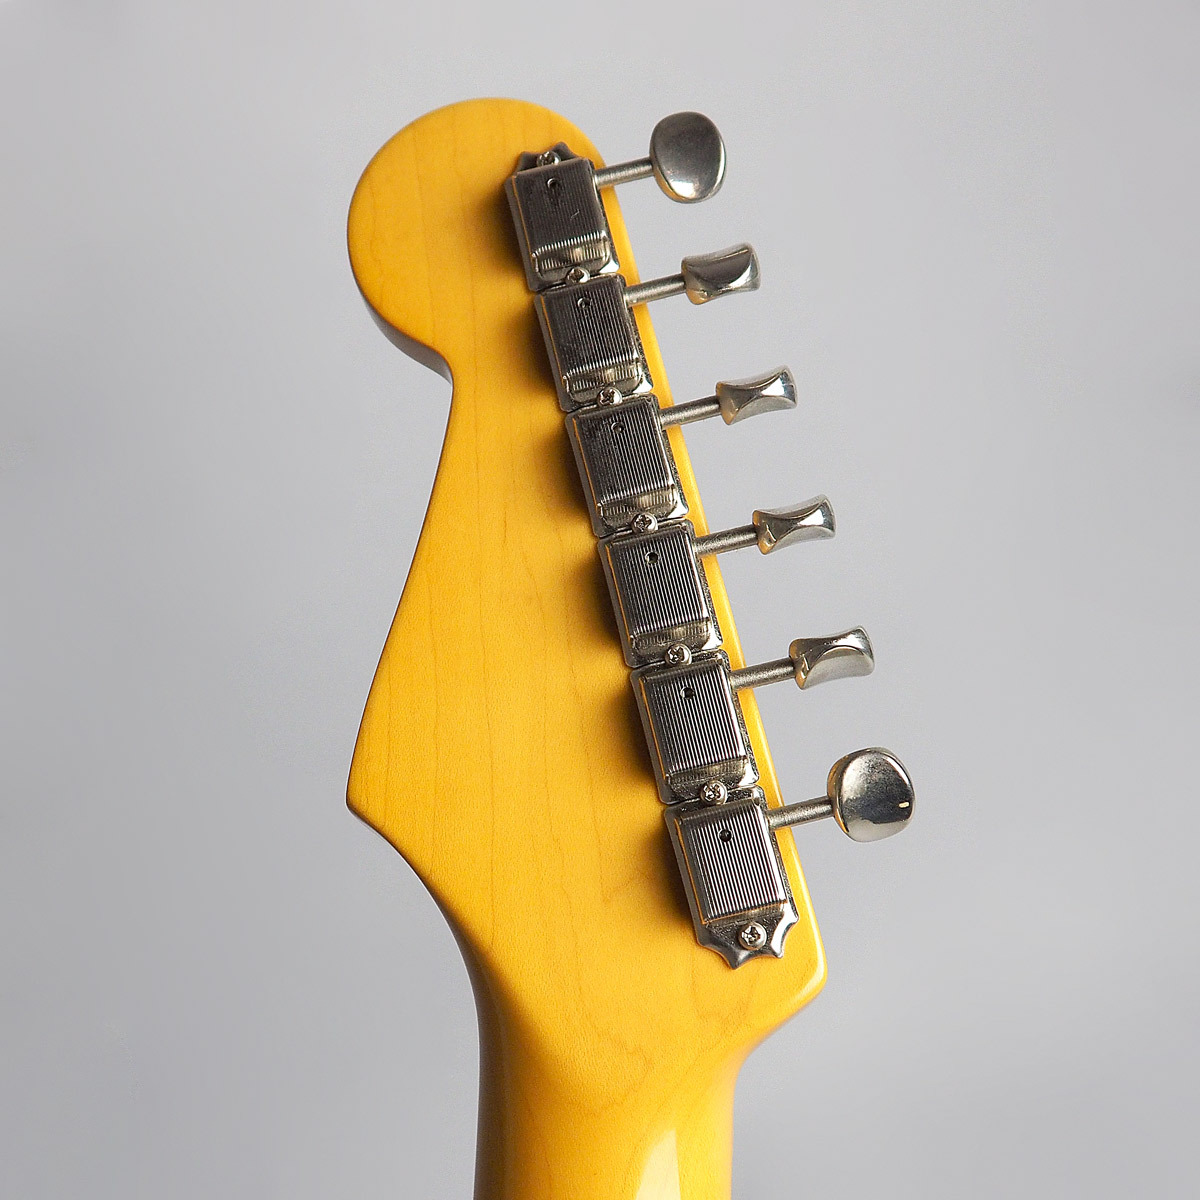 ST57 DiMarzio Collection Pickupのヘッド裏-アップ画像